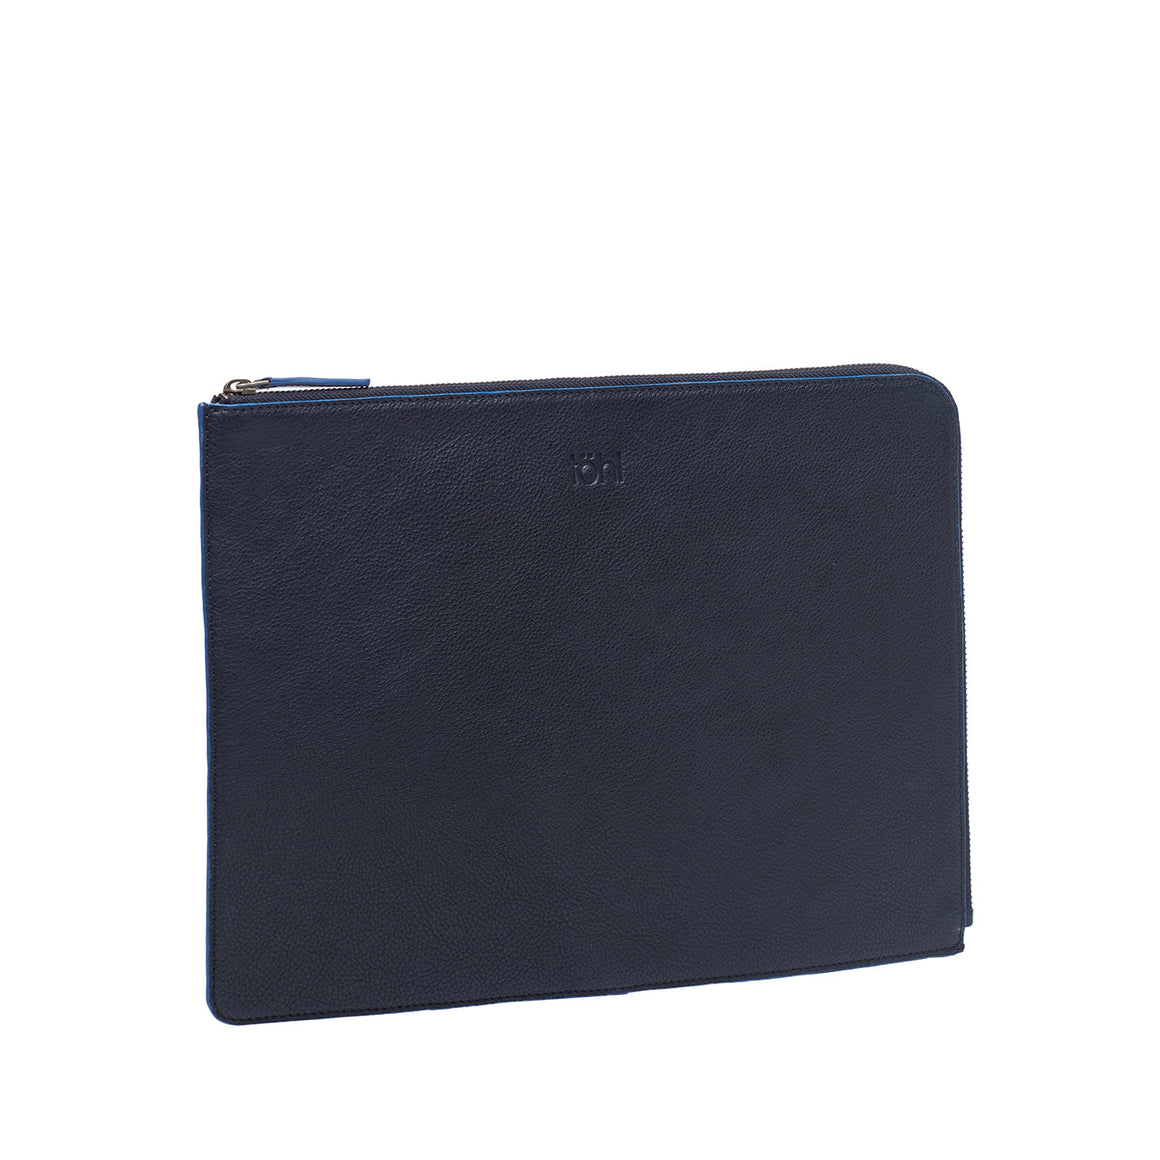 LC 0002 - TOHL GALOIES MEN'S IPAD SLEEVE - CHARCOAL BLACK